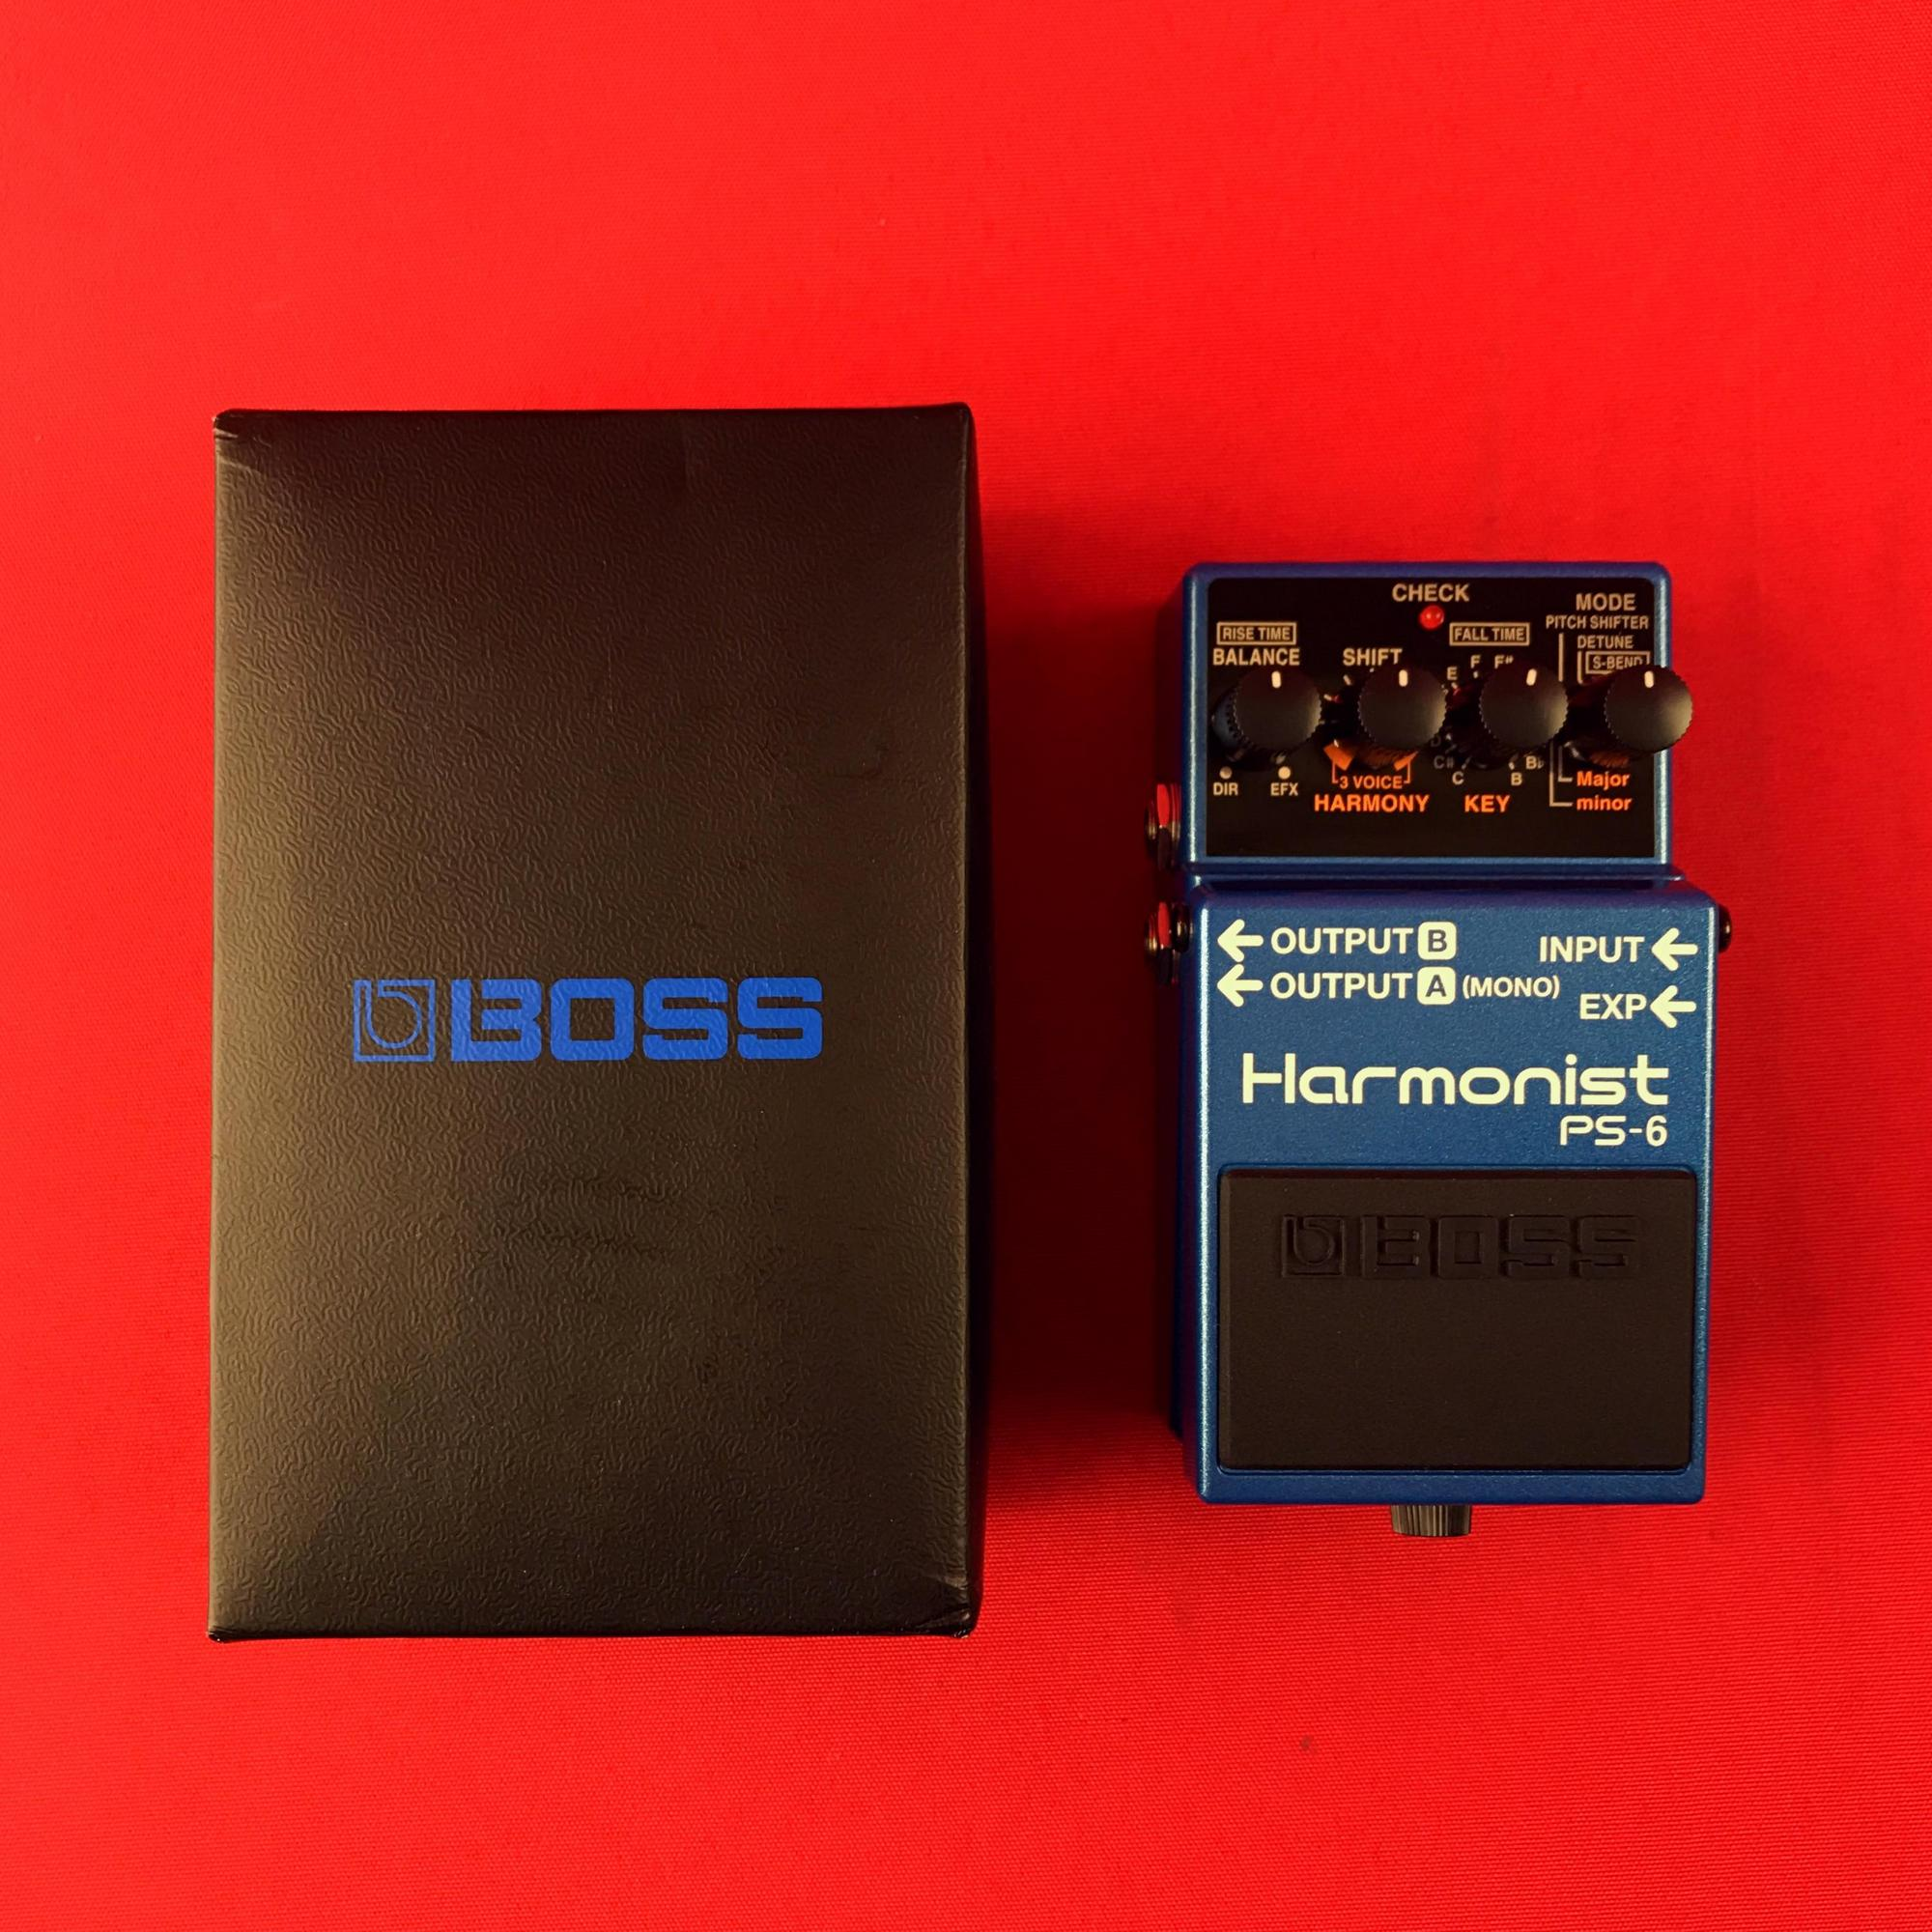 [USED] Boss PS-6 Harmonist